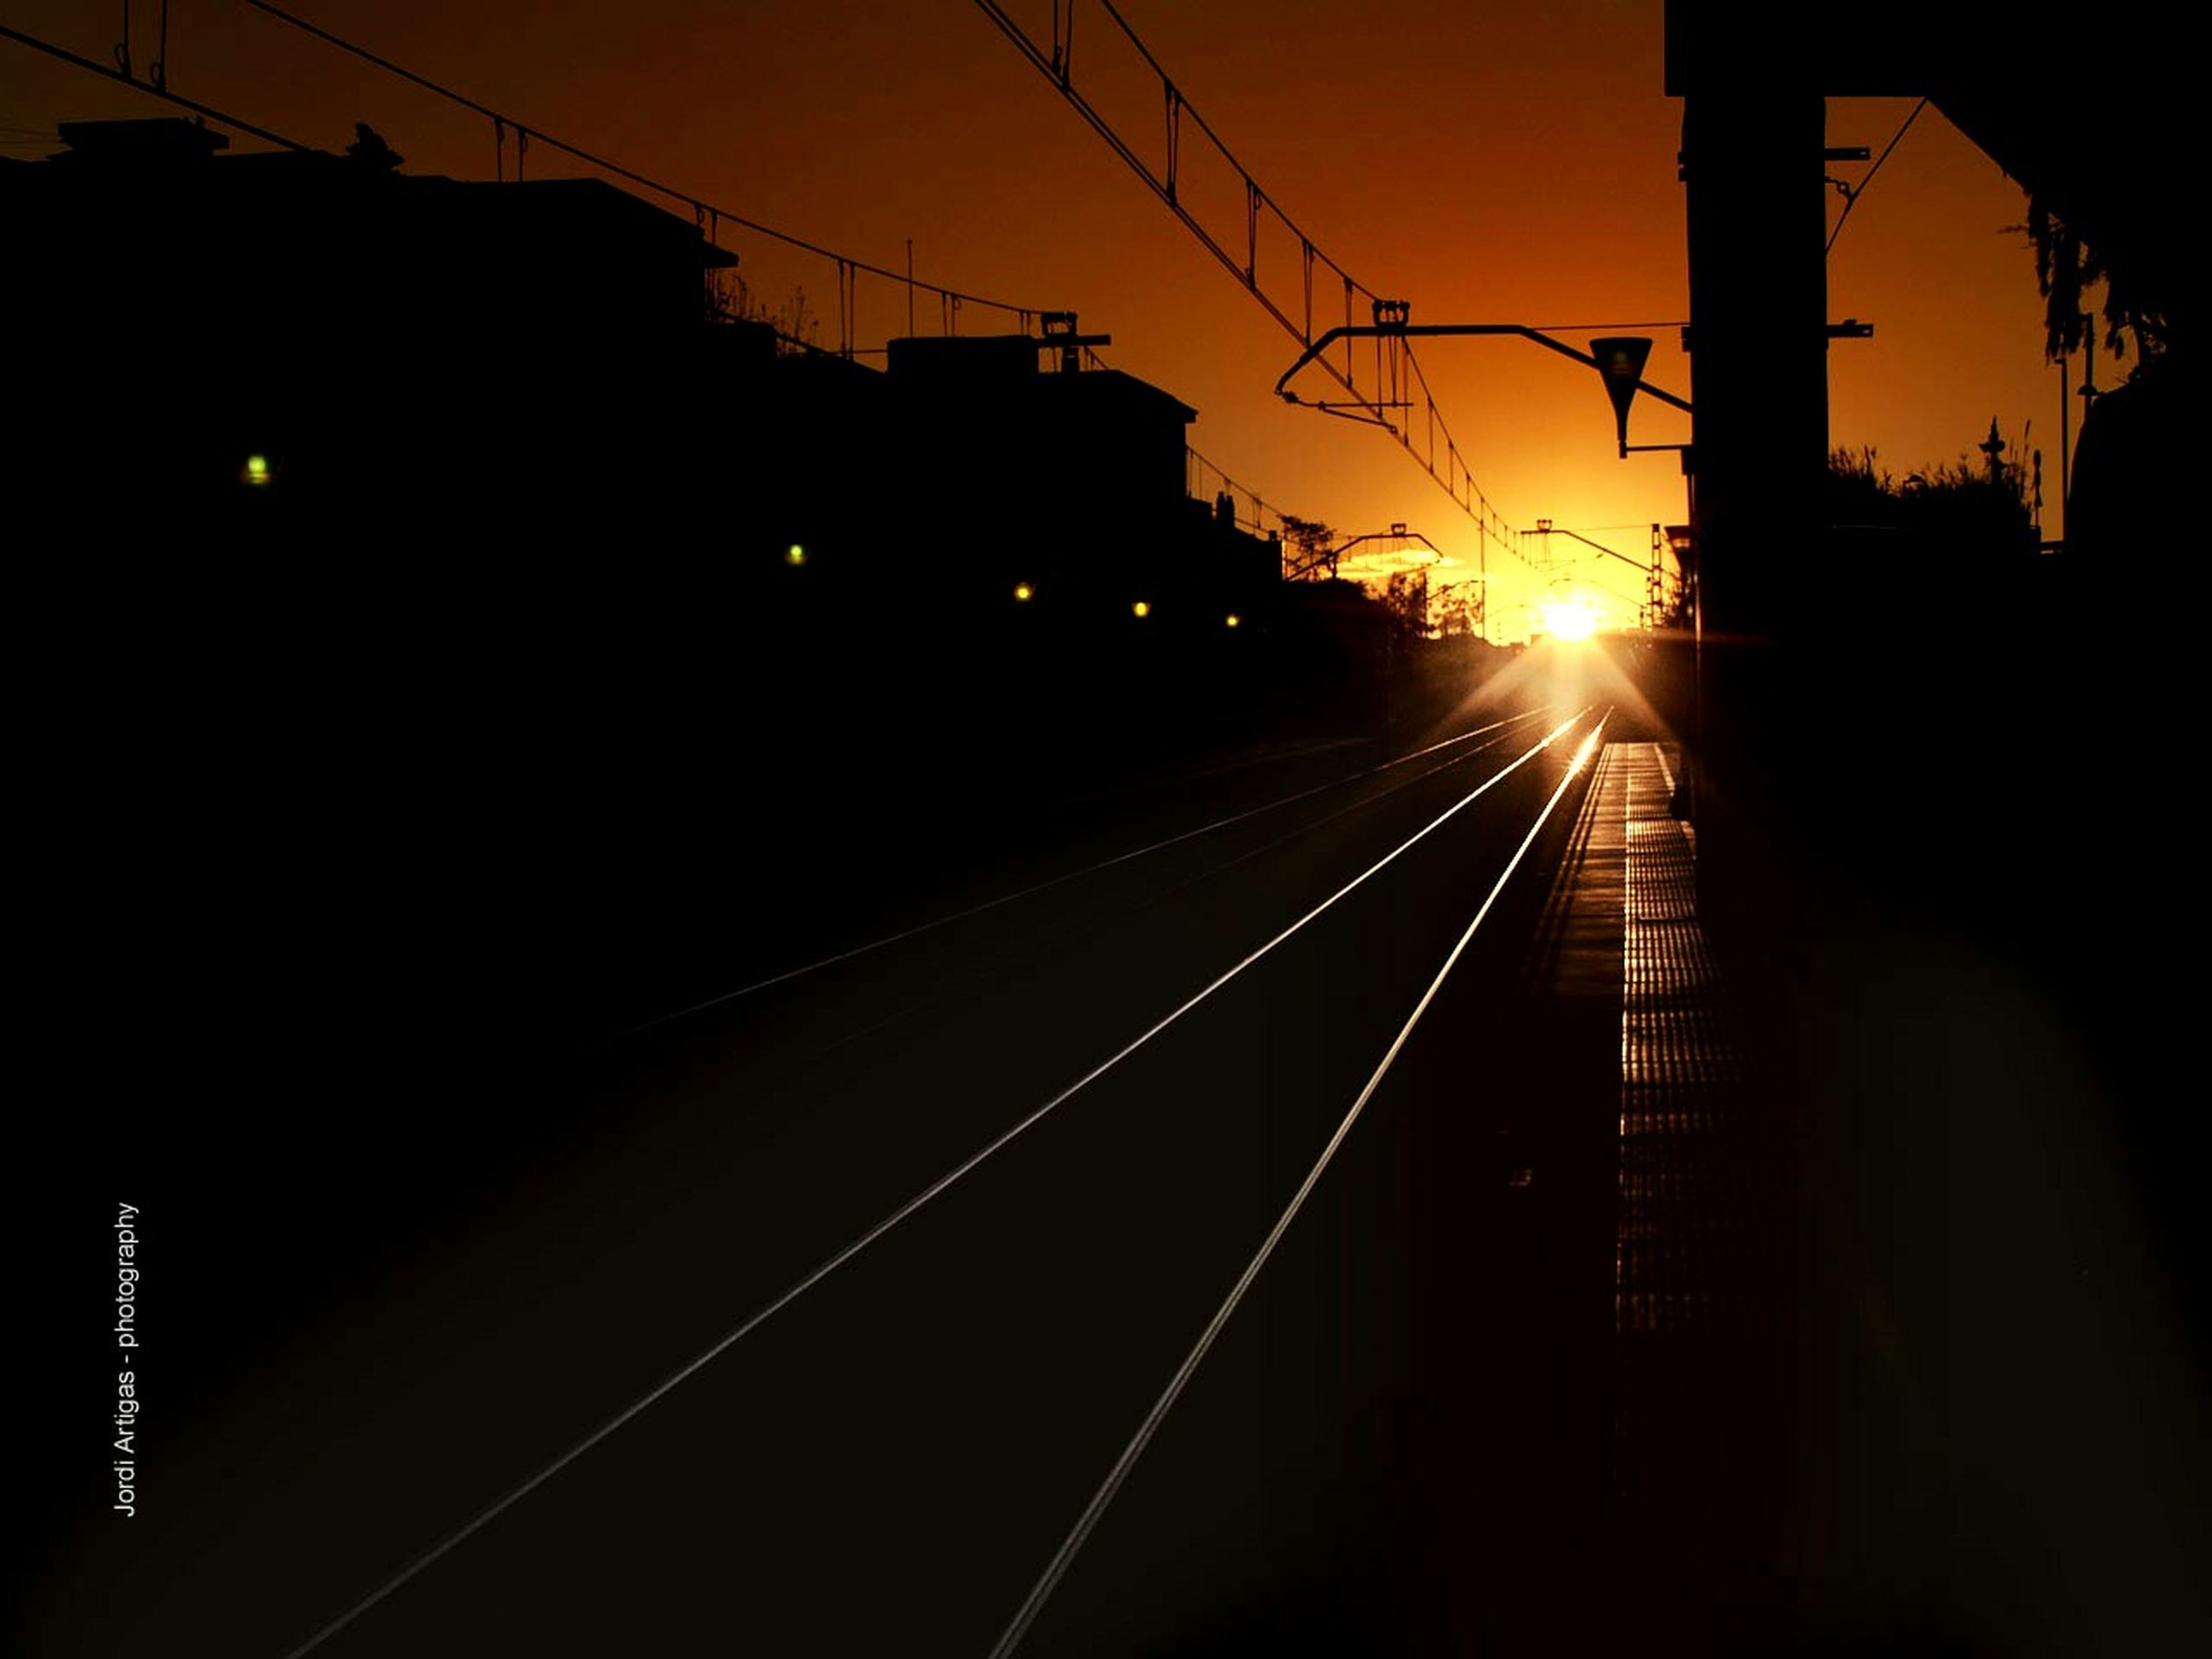 railroad track, transportation, sunset, rail transportation, power line, electricity pylon, the way forward, electricity, diminishing perspective, vanishing point, illuminated, cable, silhouette, connection, public transportation, power supply, sky, railroad station, railroad station platform, long